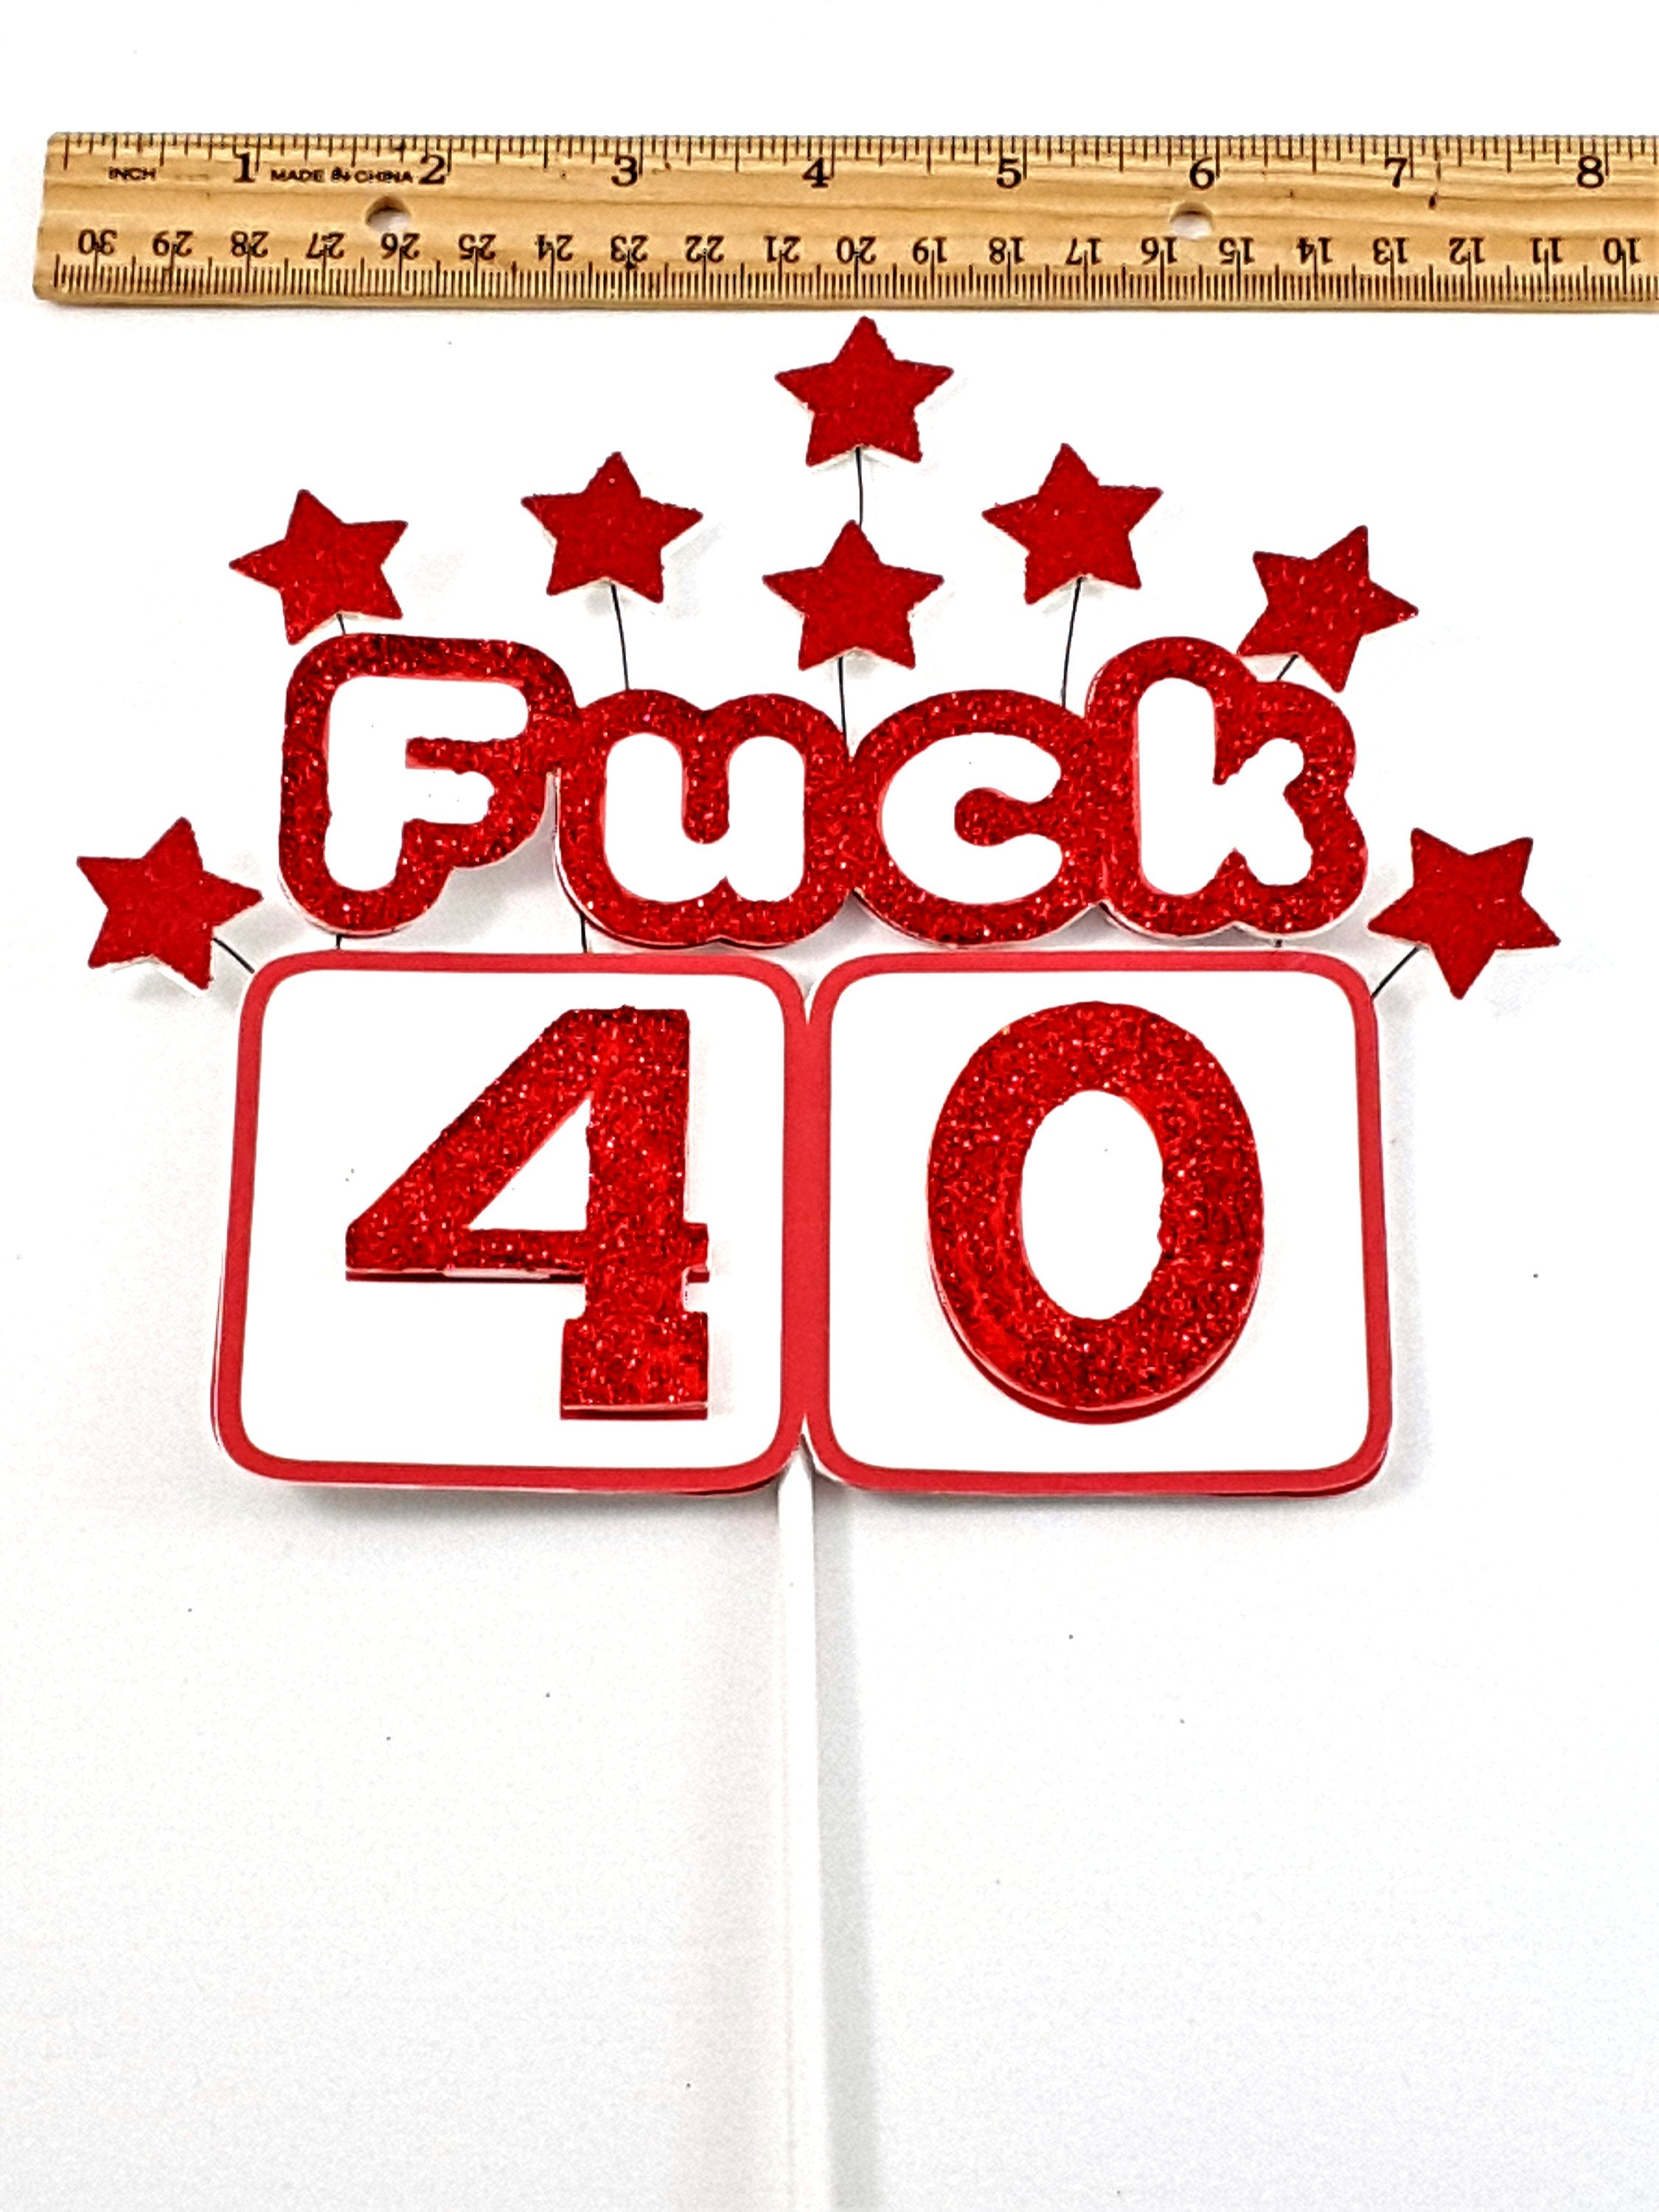 Funny Custom Adult Birthday Cake Topper for Any Age, Birthday Decoration - TheLastWordBish.com